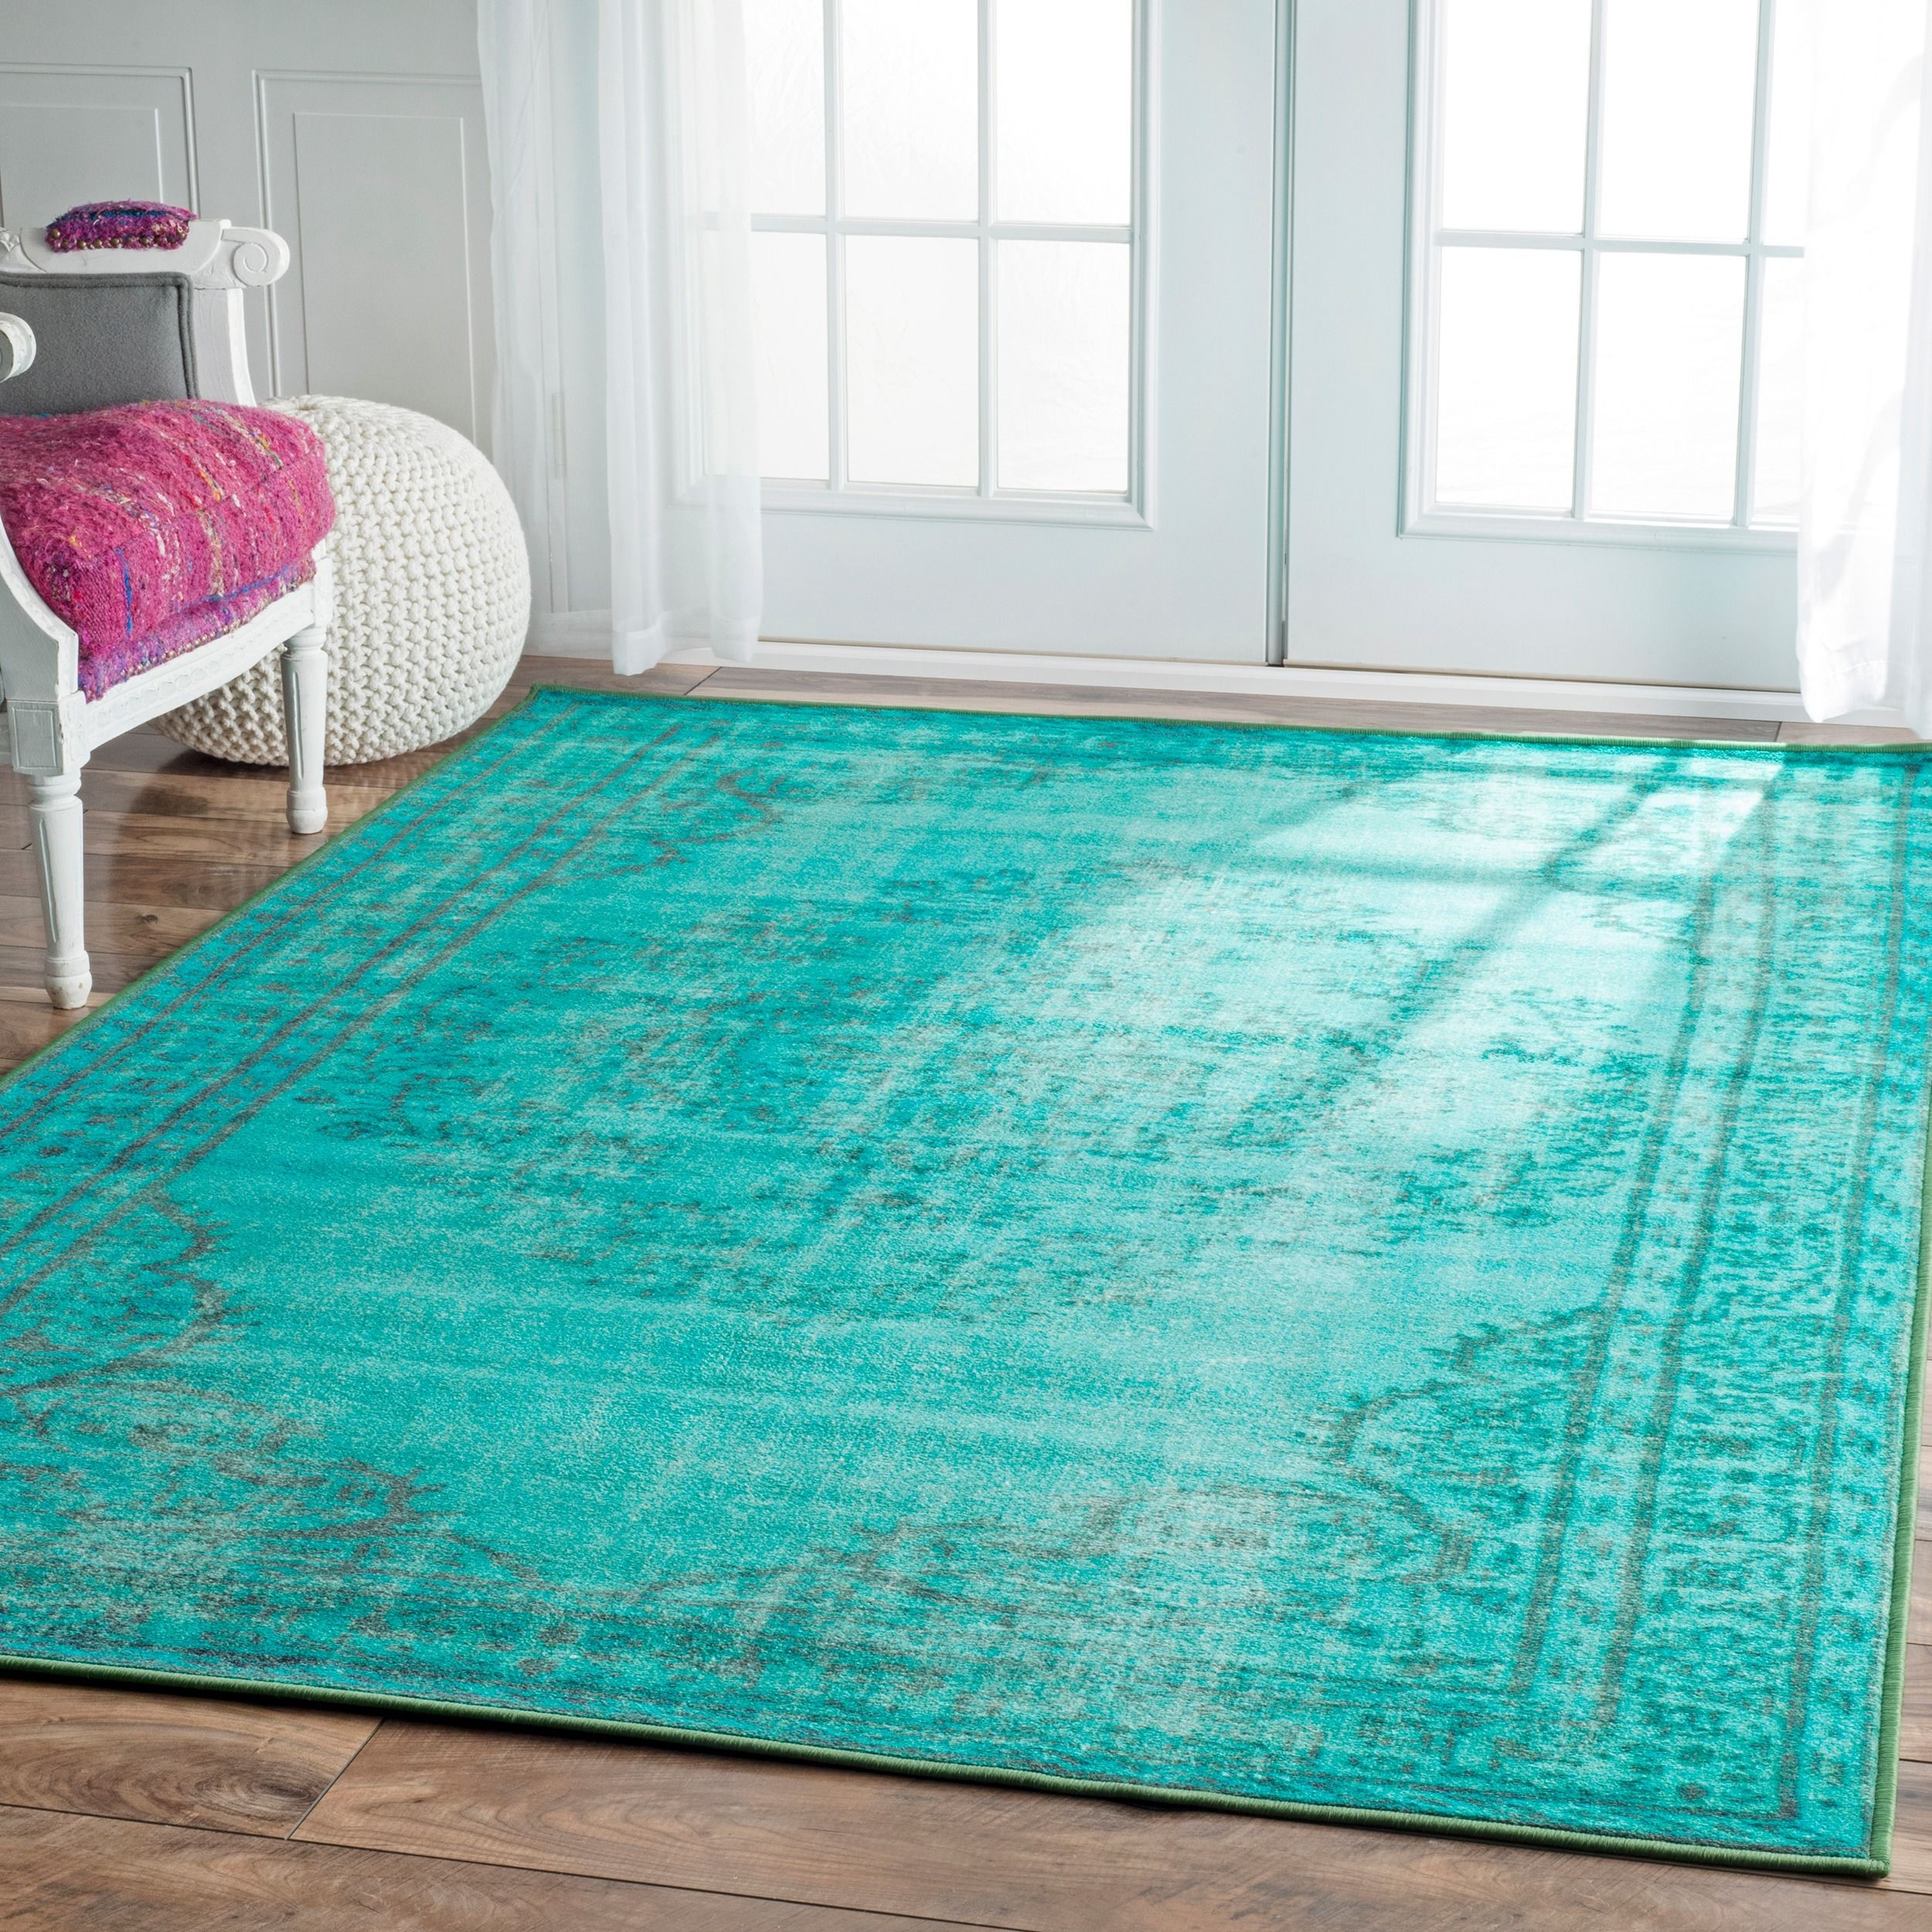 Shop Nuloom Traditional Persian Fancy Aqua Rug: Vibrant Overdyed Rugs, These Machine Woven Rugs Are Easy